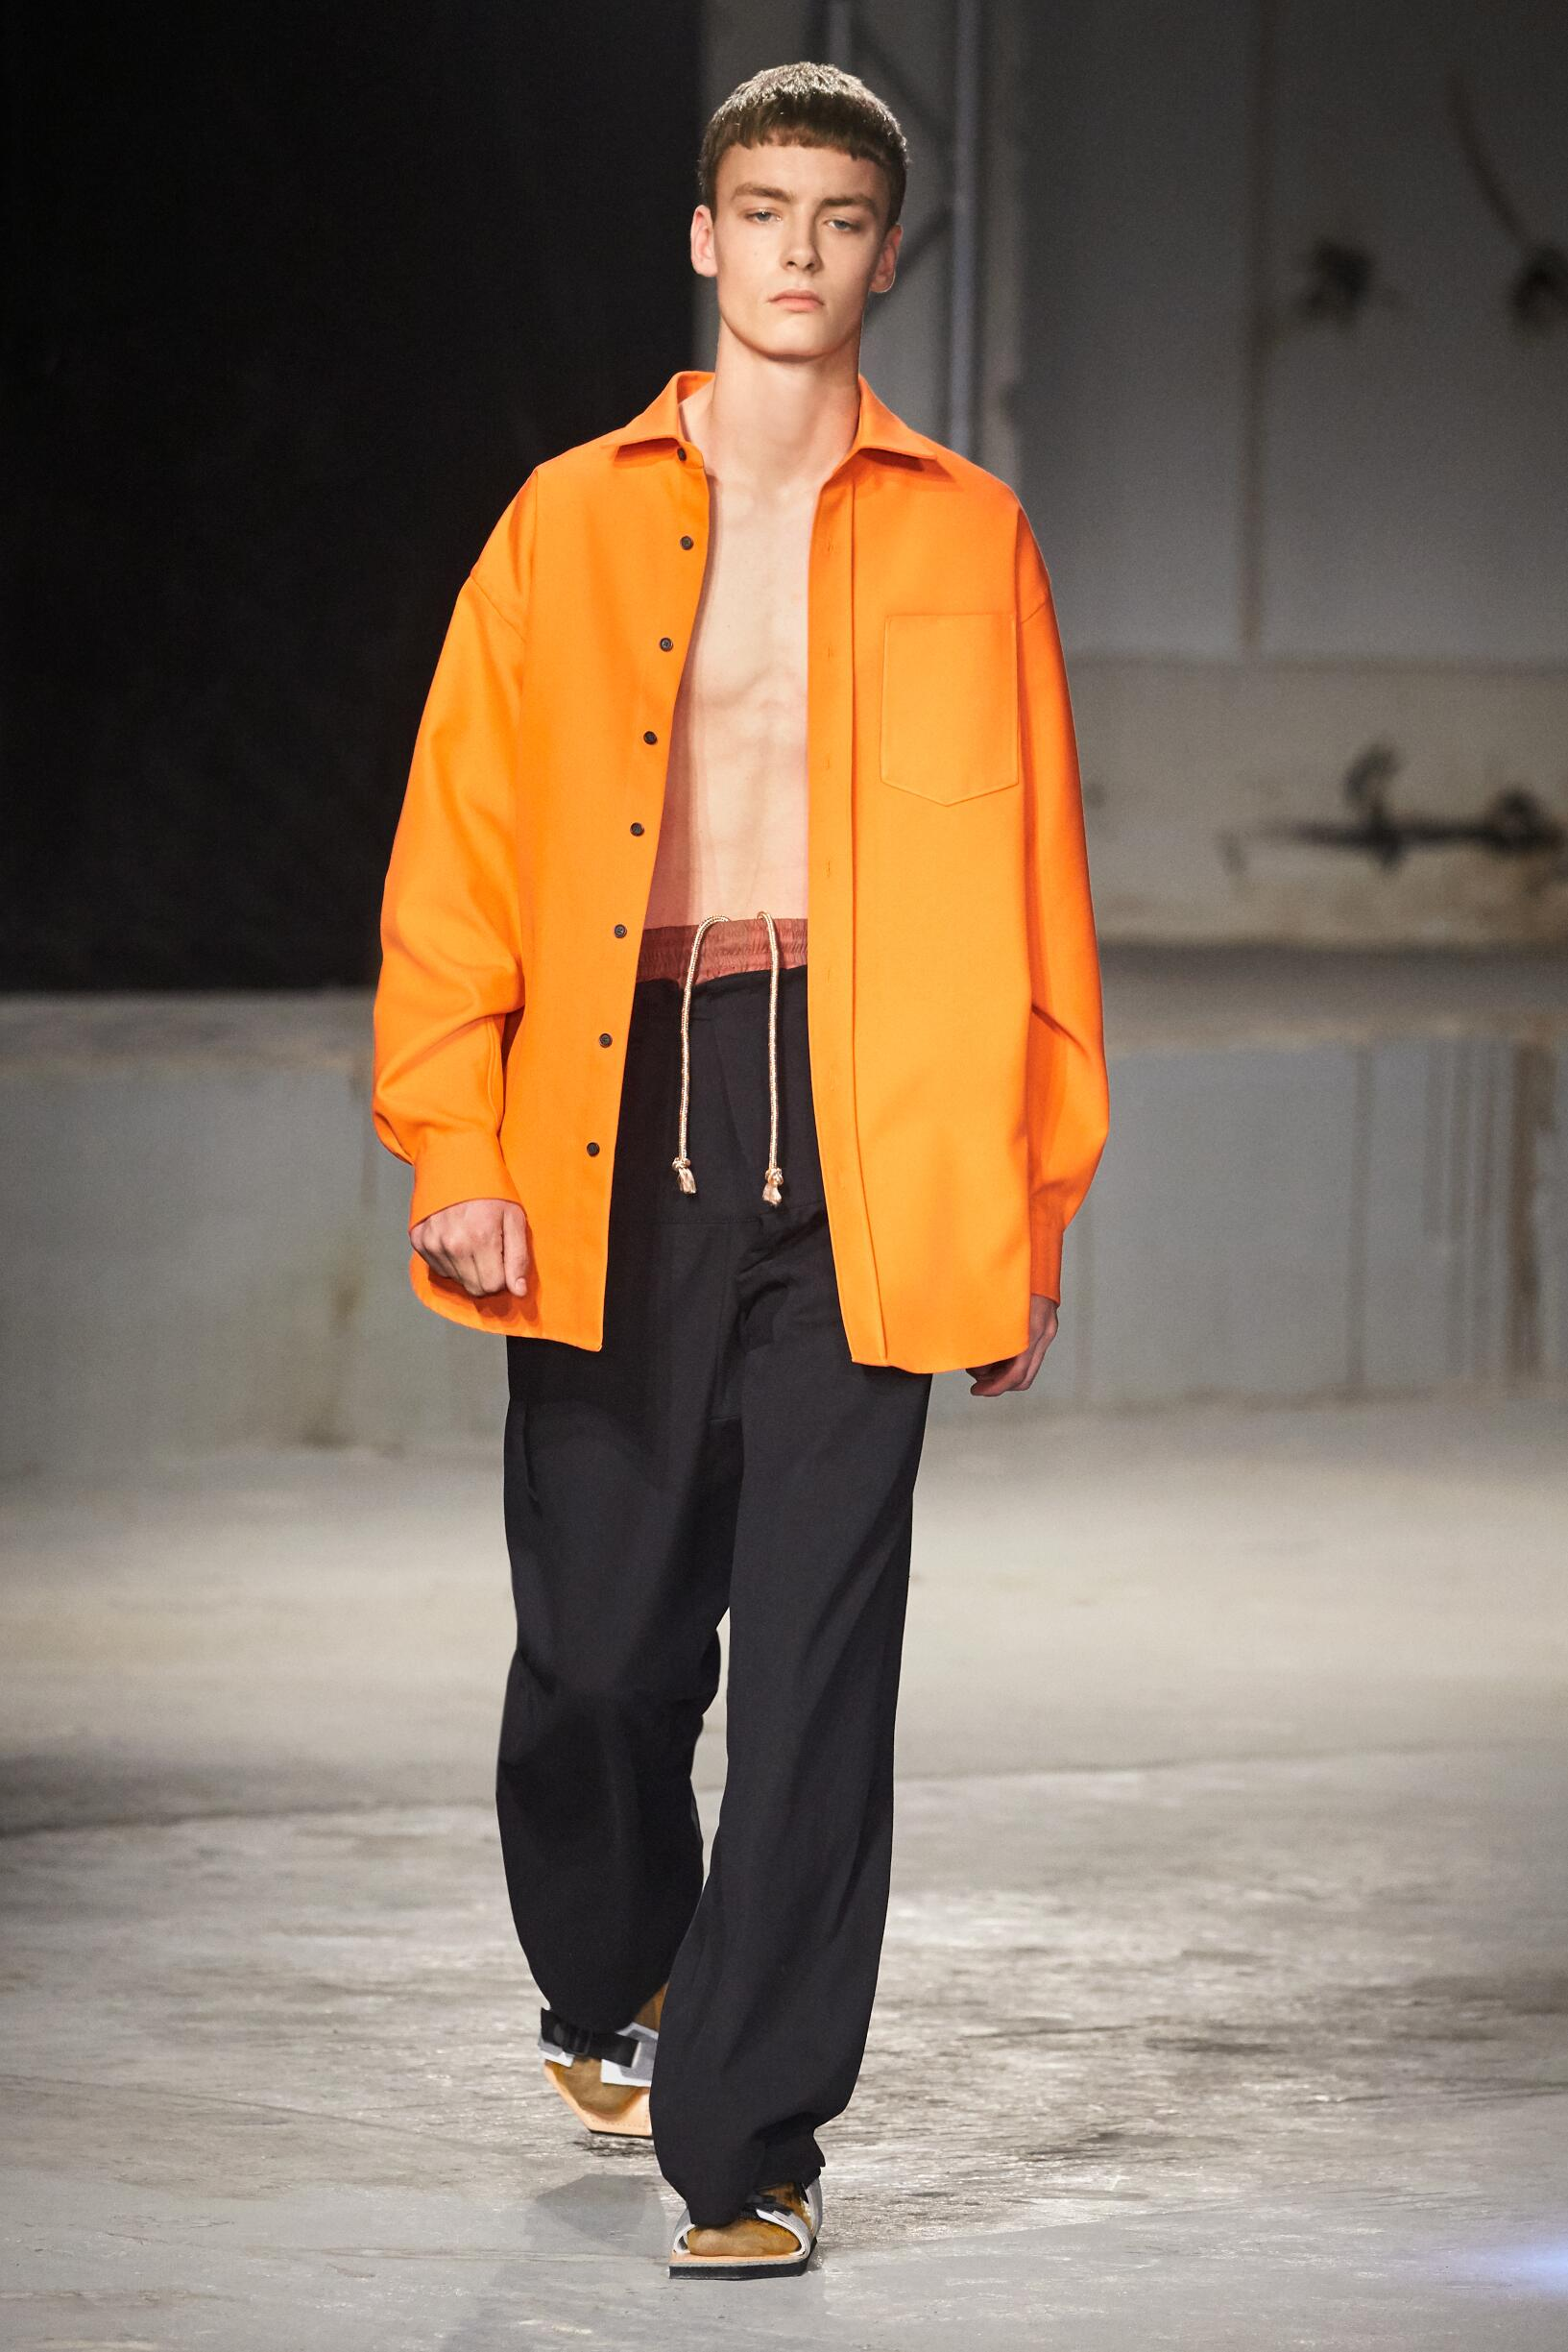 Fashion Man Model Acne Studios Catwalk